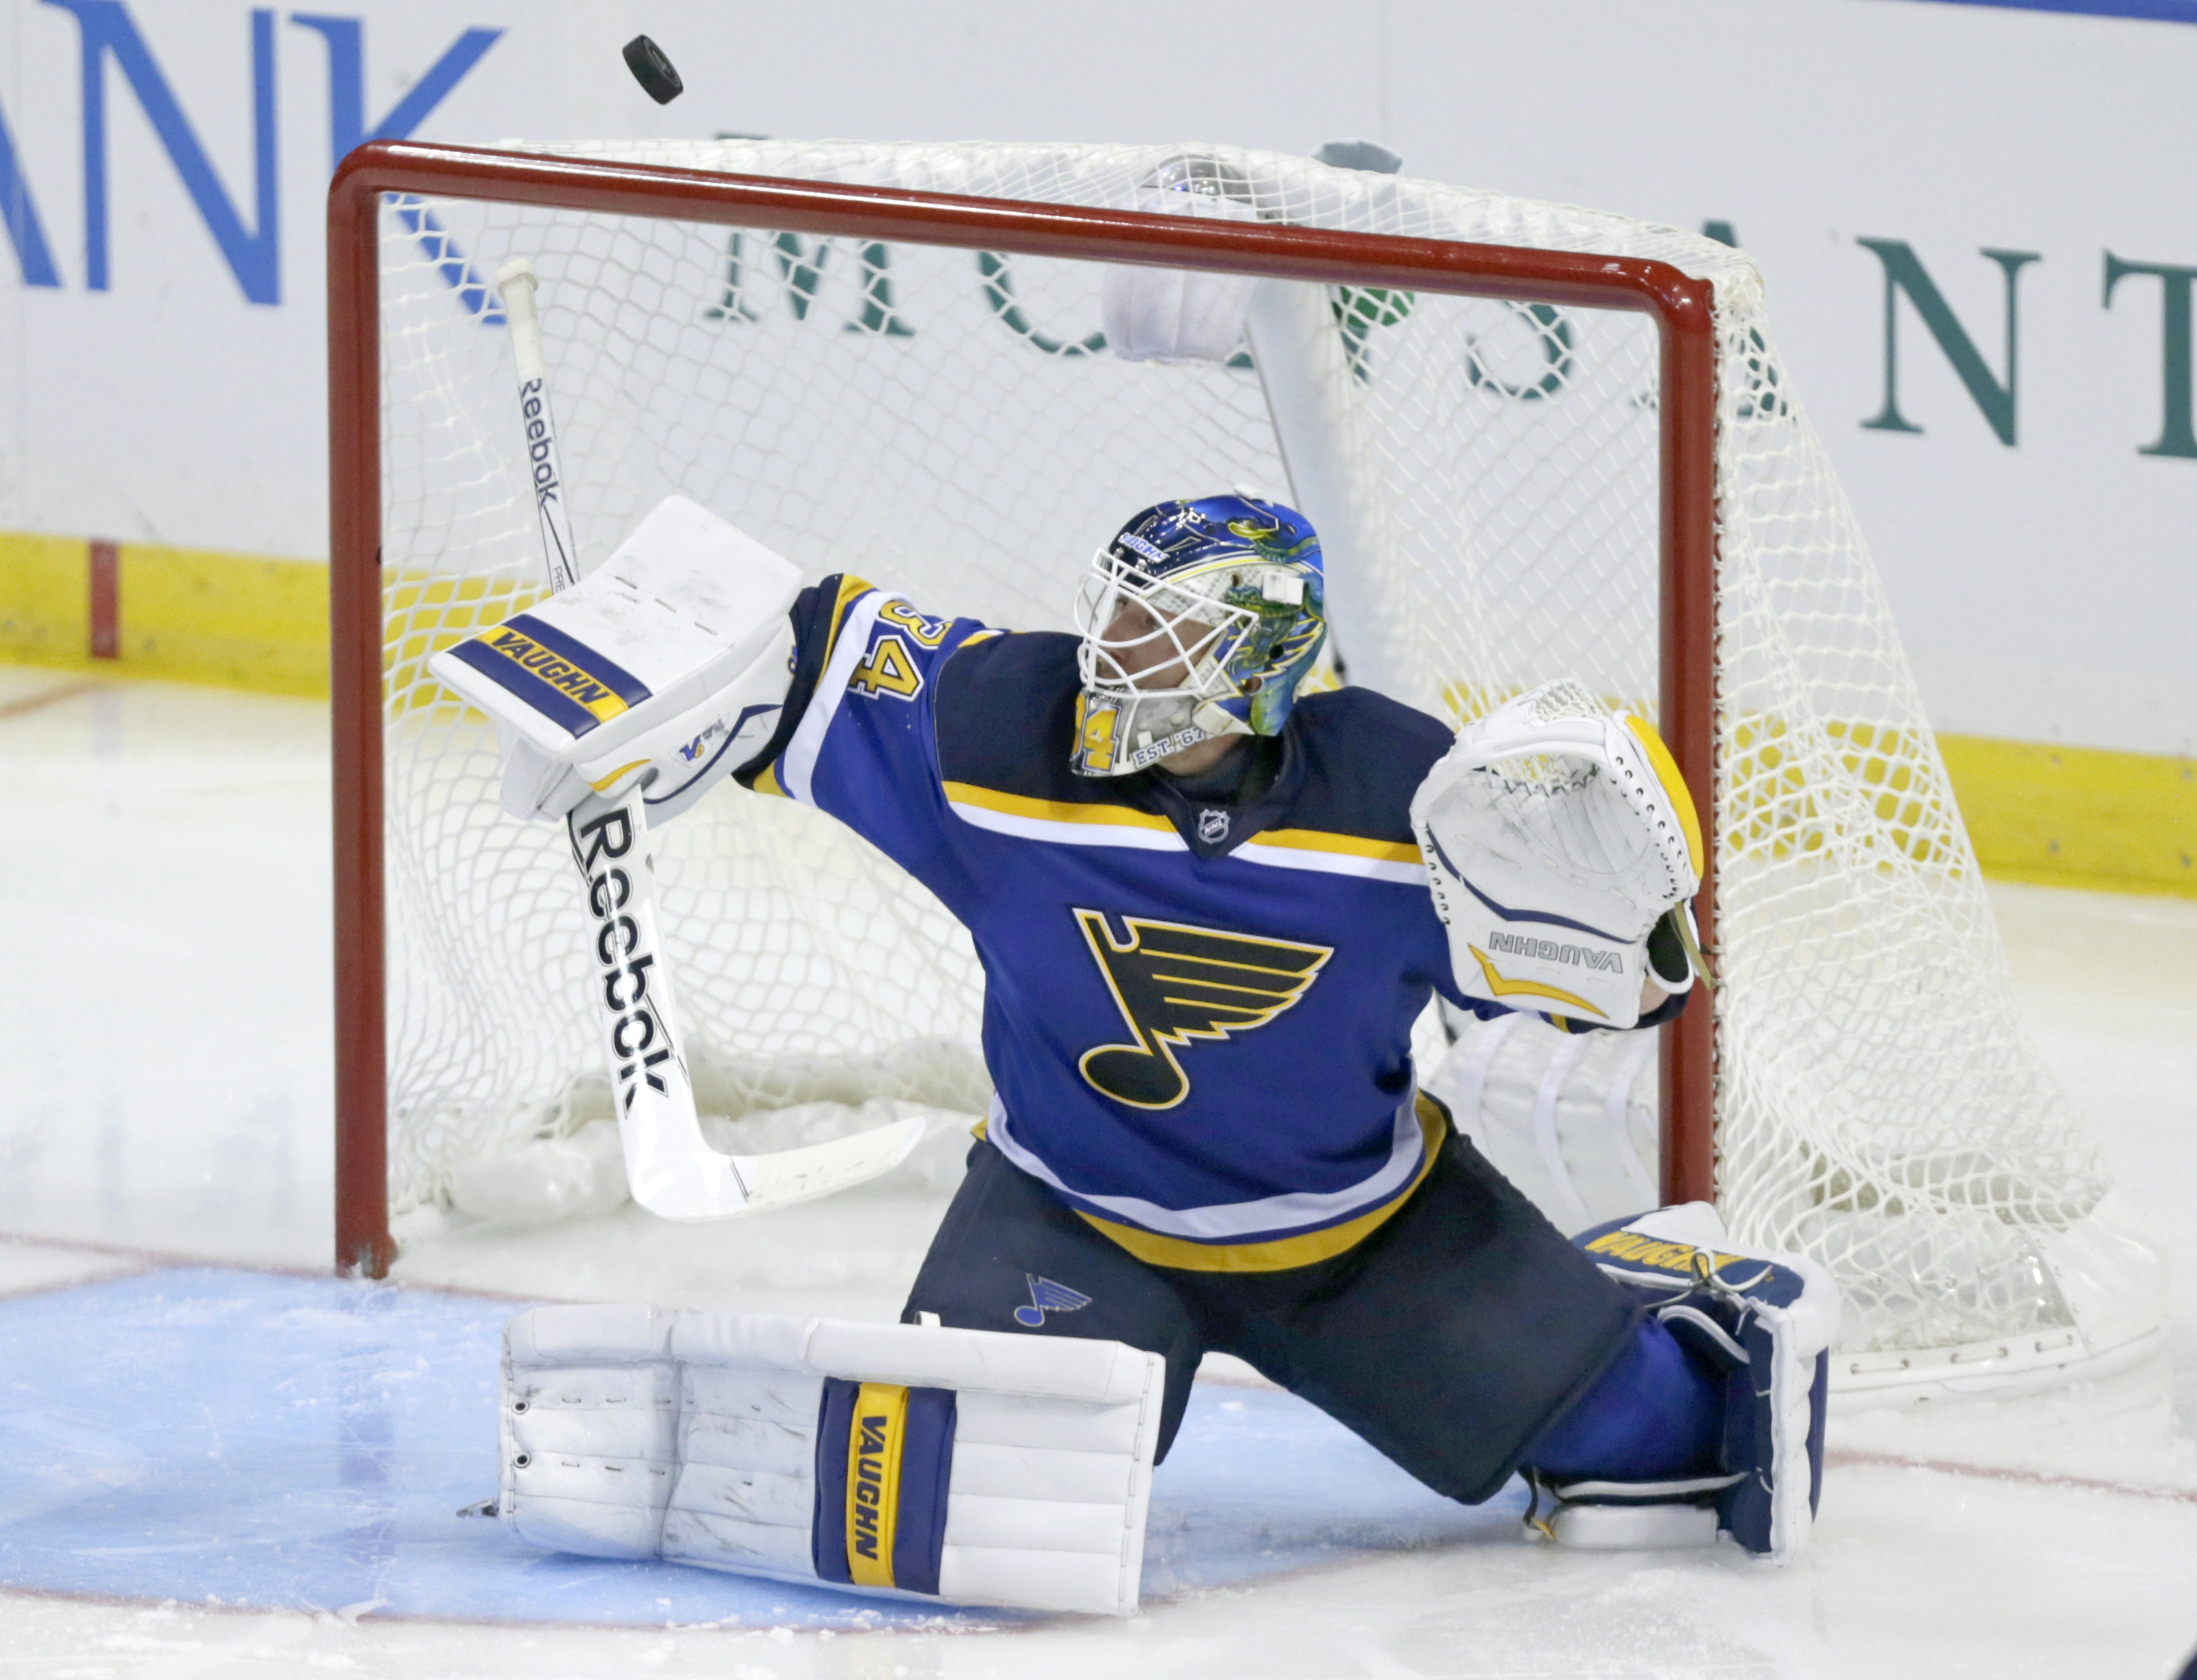 St. Louis Blues goalie Jake Allen (34) makes a stick save in the third period of an NHL hockey game against the Tampa Bay Lightning, Tuesday, Oct. 27, 2015 in St. Louis. Allen stopped all 26 shots he faced as the Blues beat the Lightning 2-0. (AP Photo/To